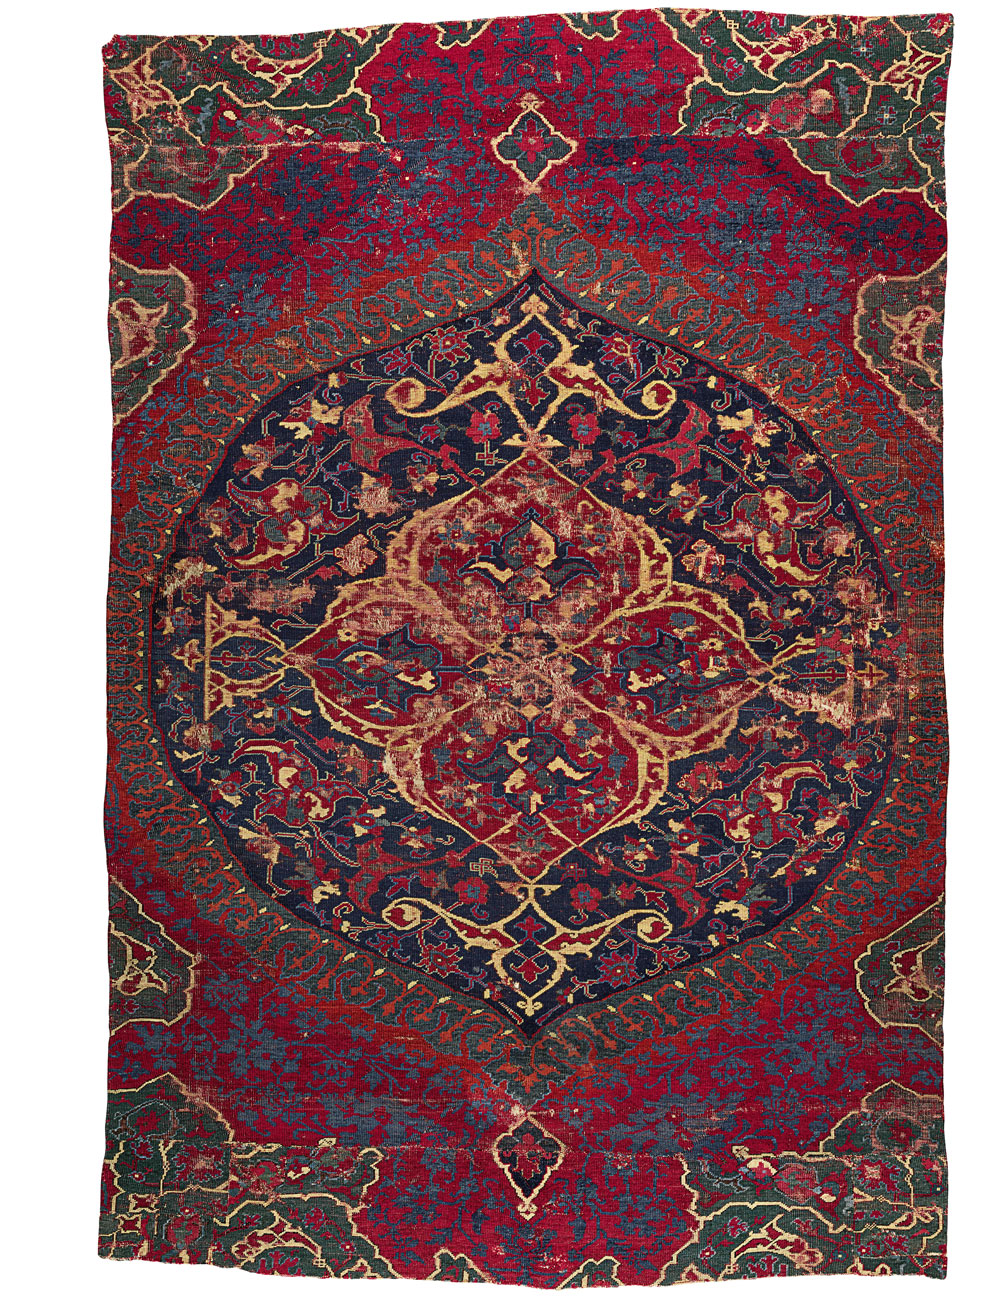 'Medallion' carpet fragment, Oushak